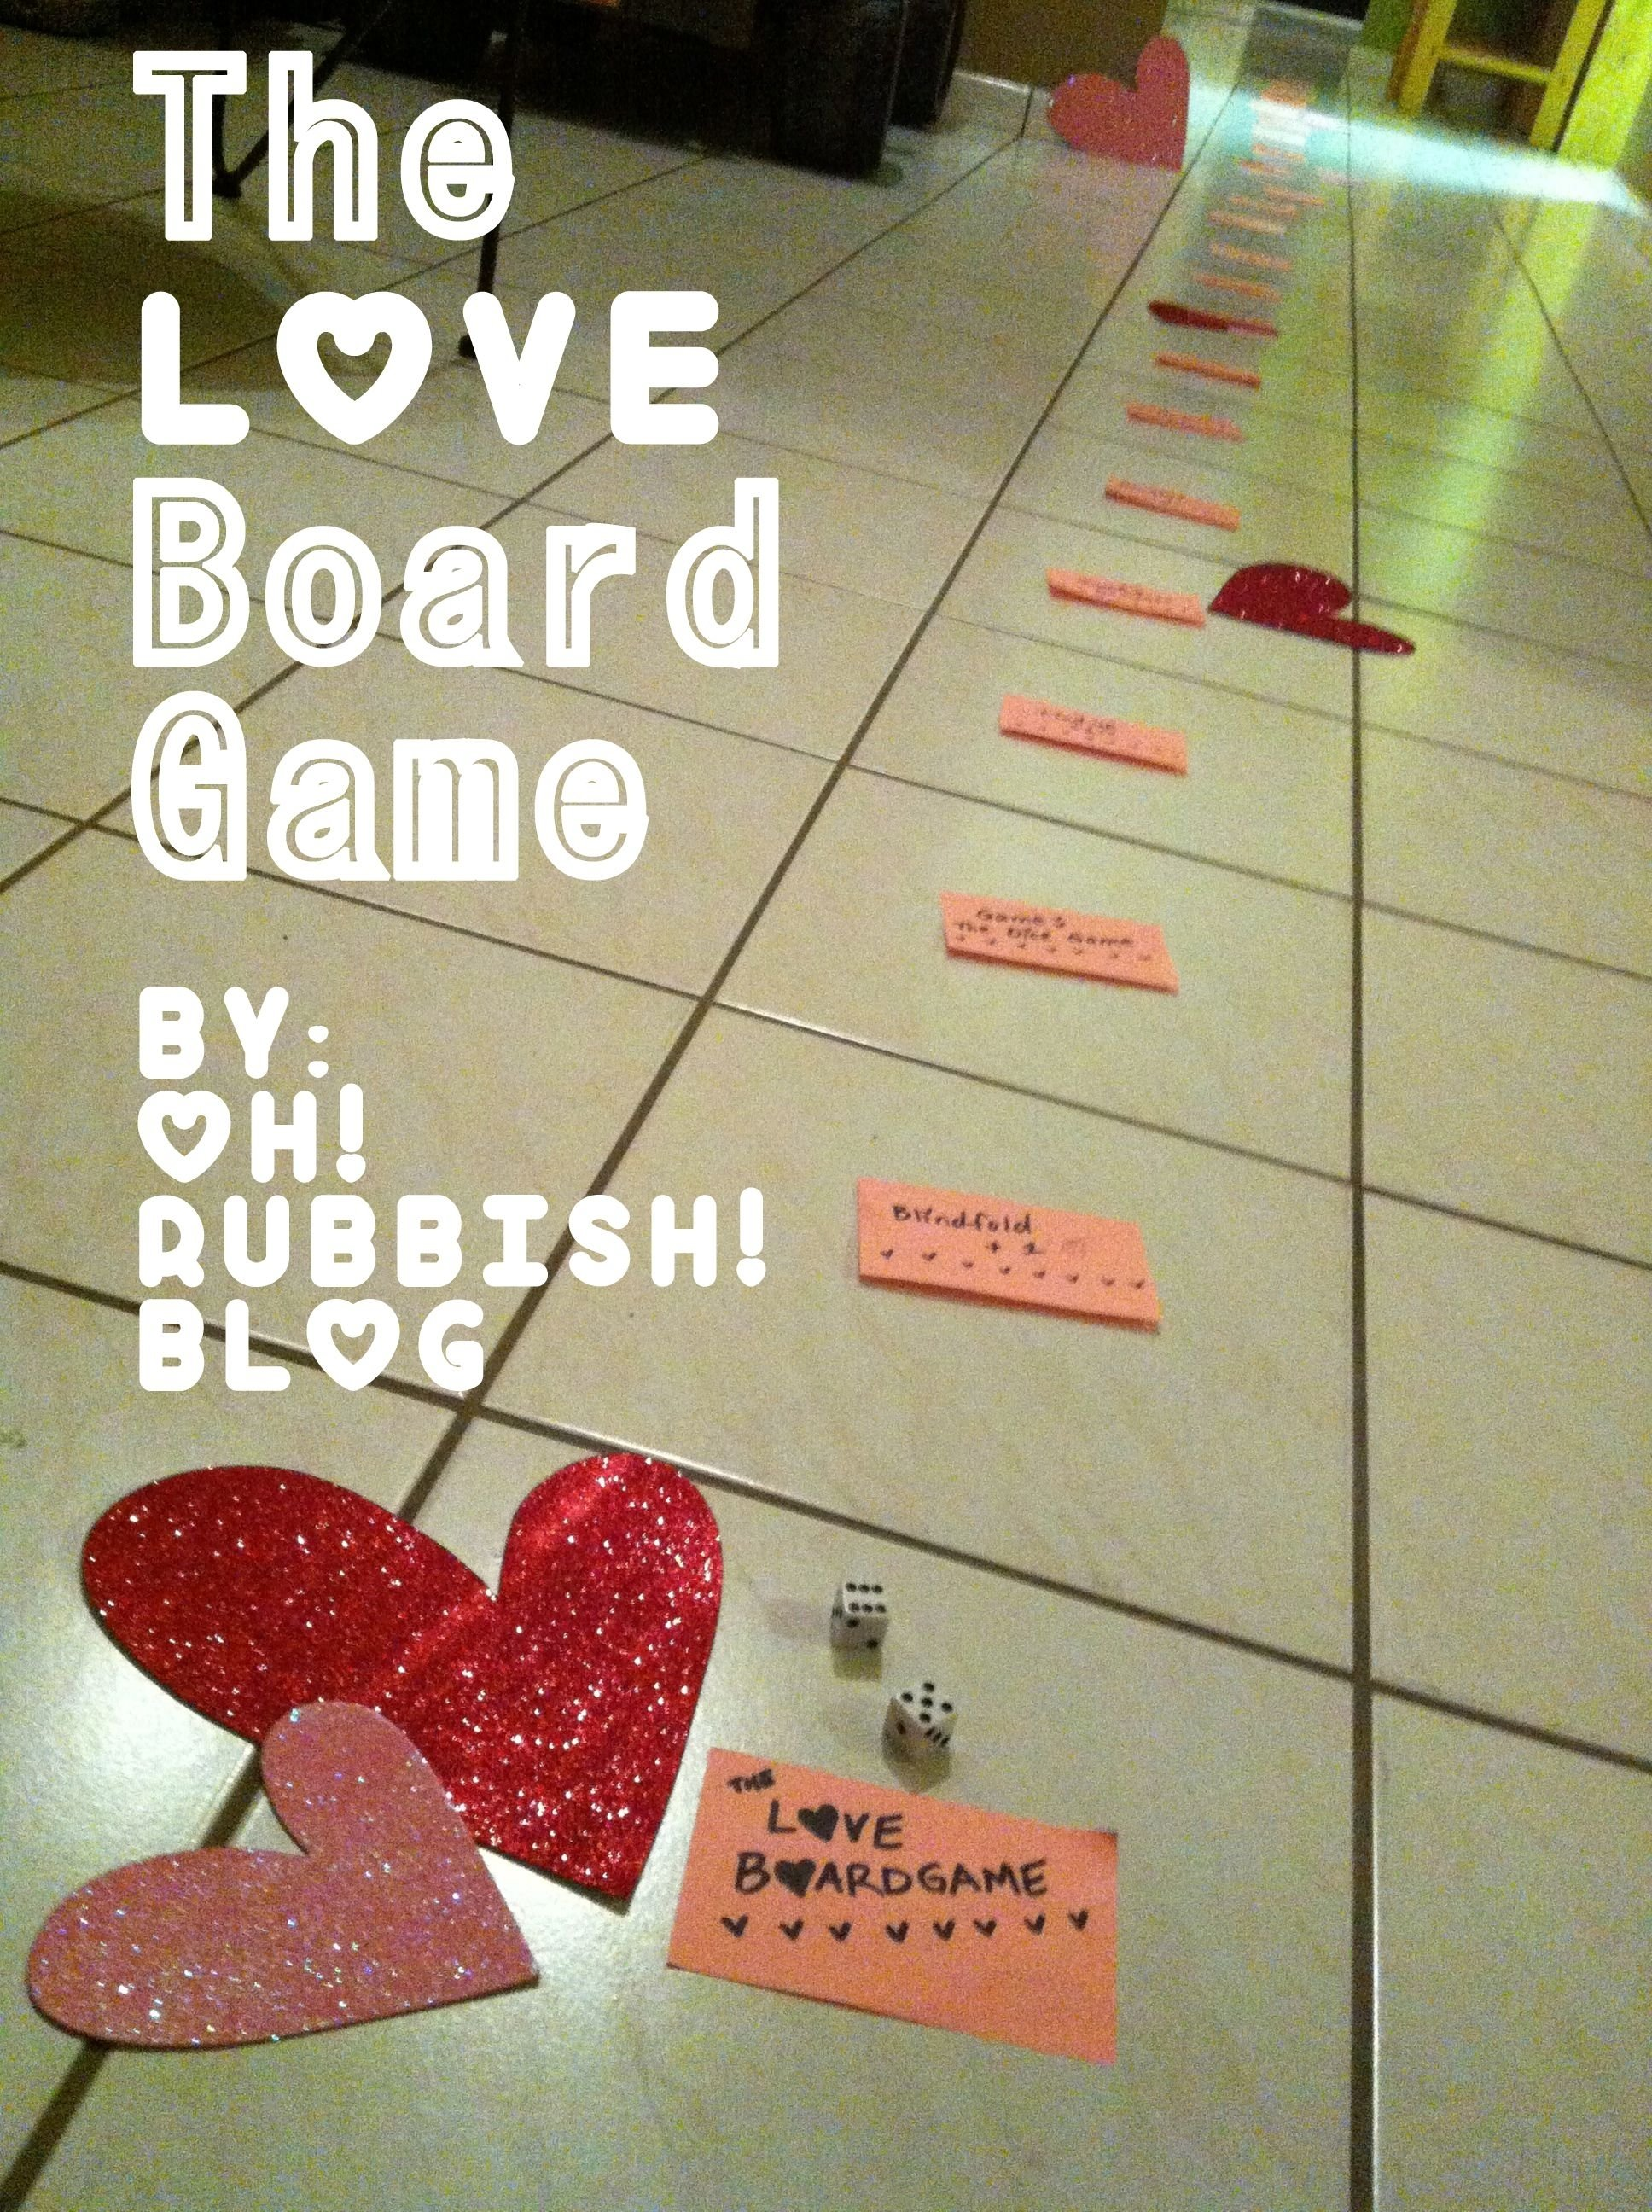 10 Great Valentine Day Ideas For Husband the love board game valentine game for couples valentine day 15 2020